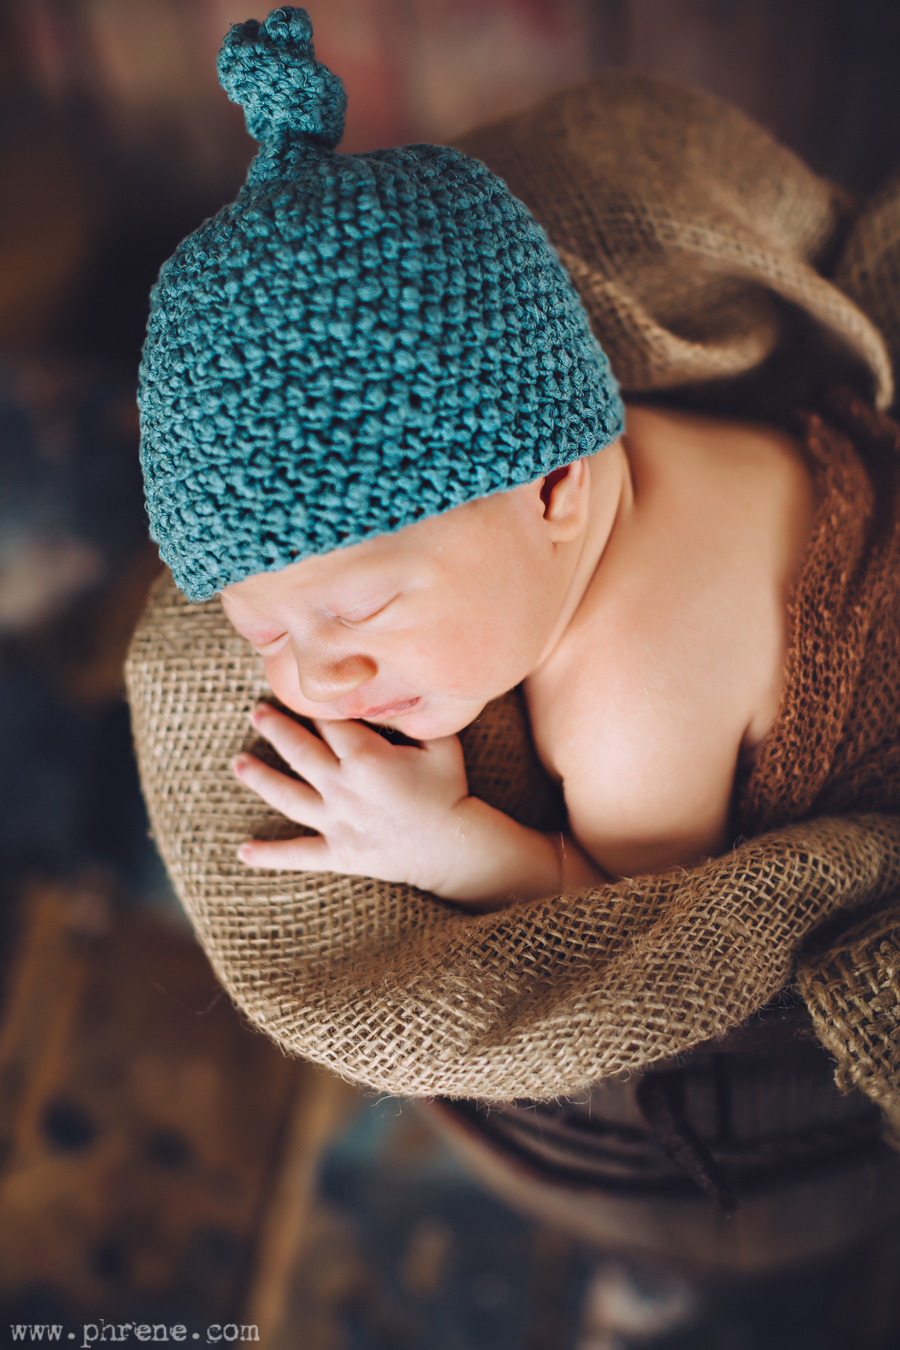 michigan-rustic-newborn-photography04